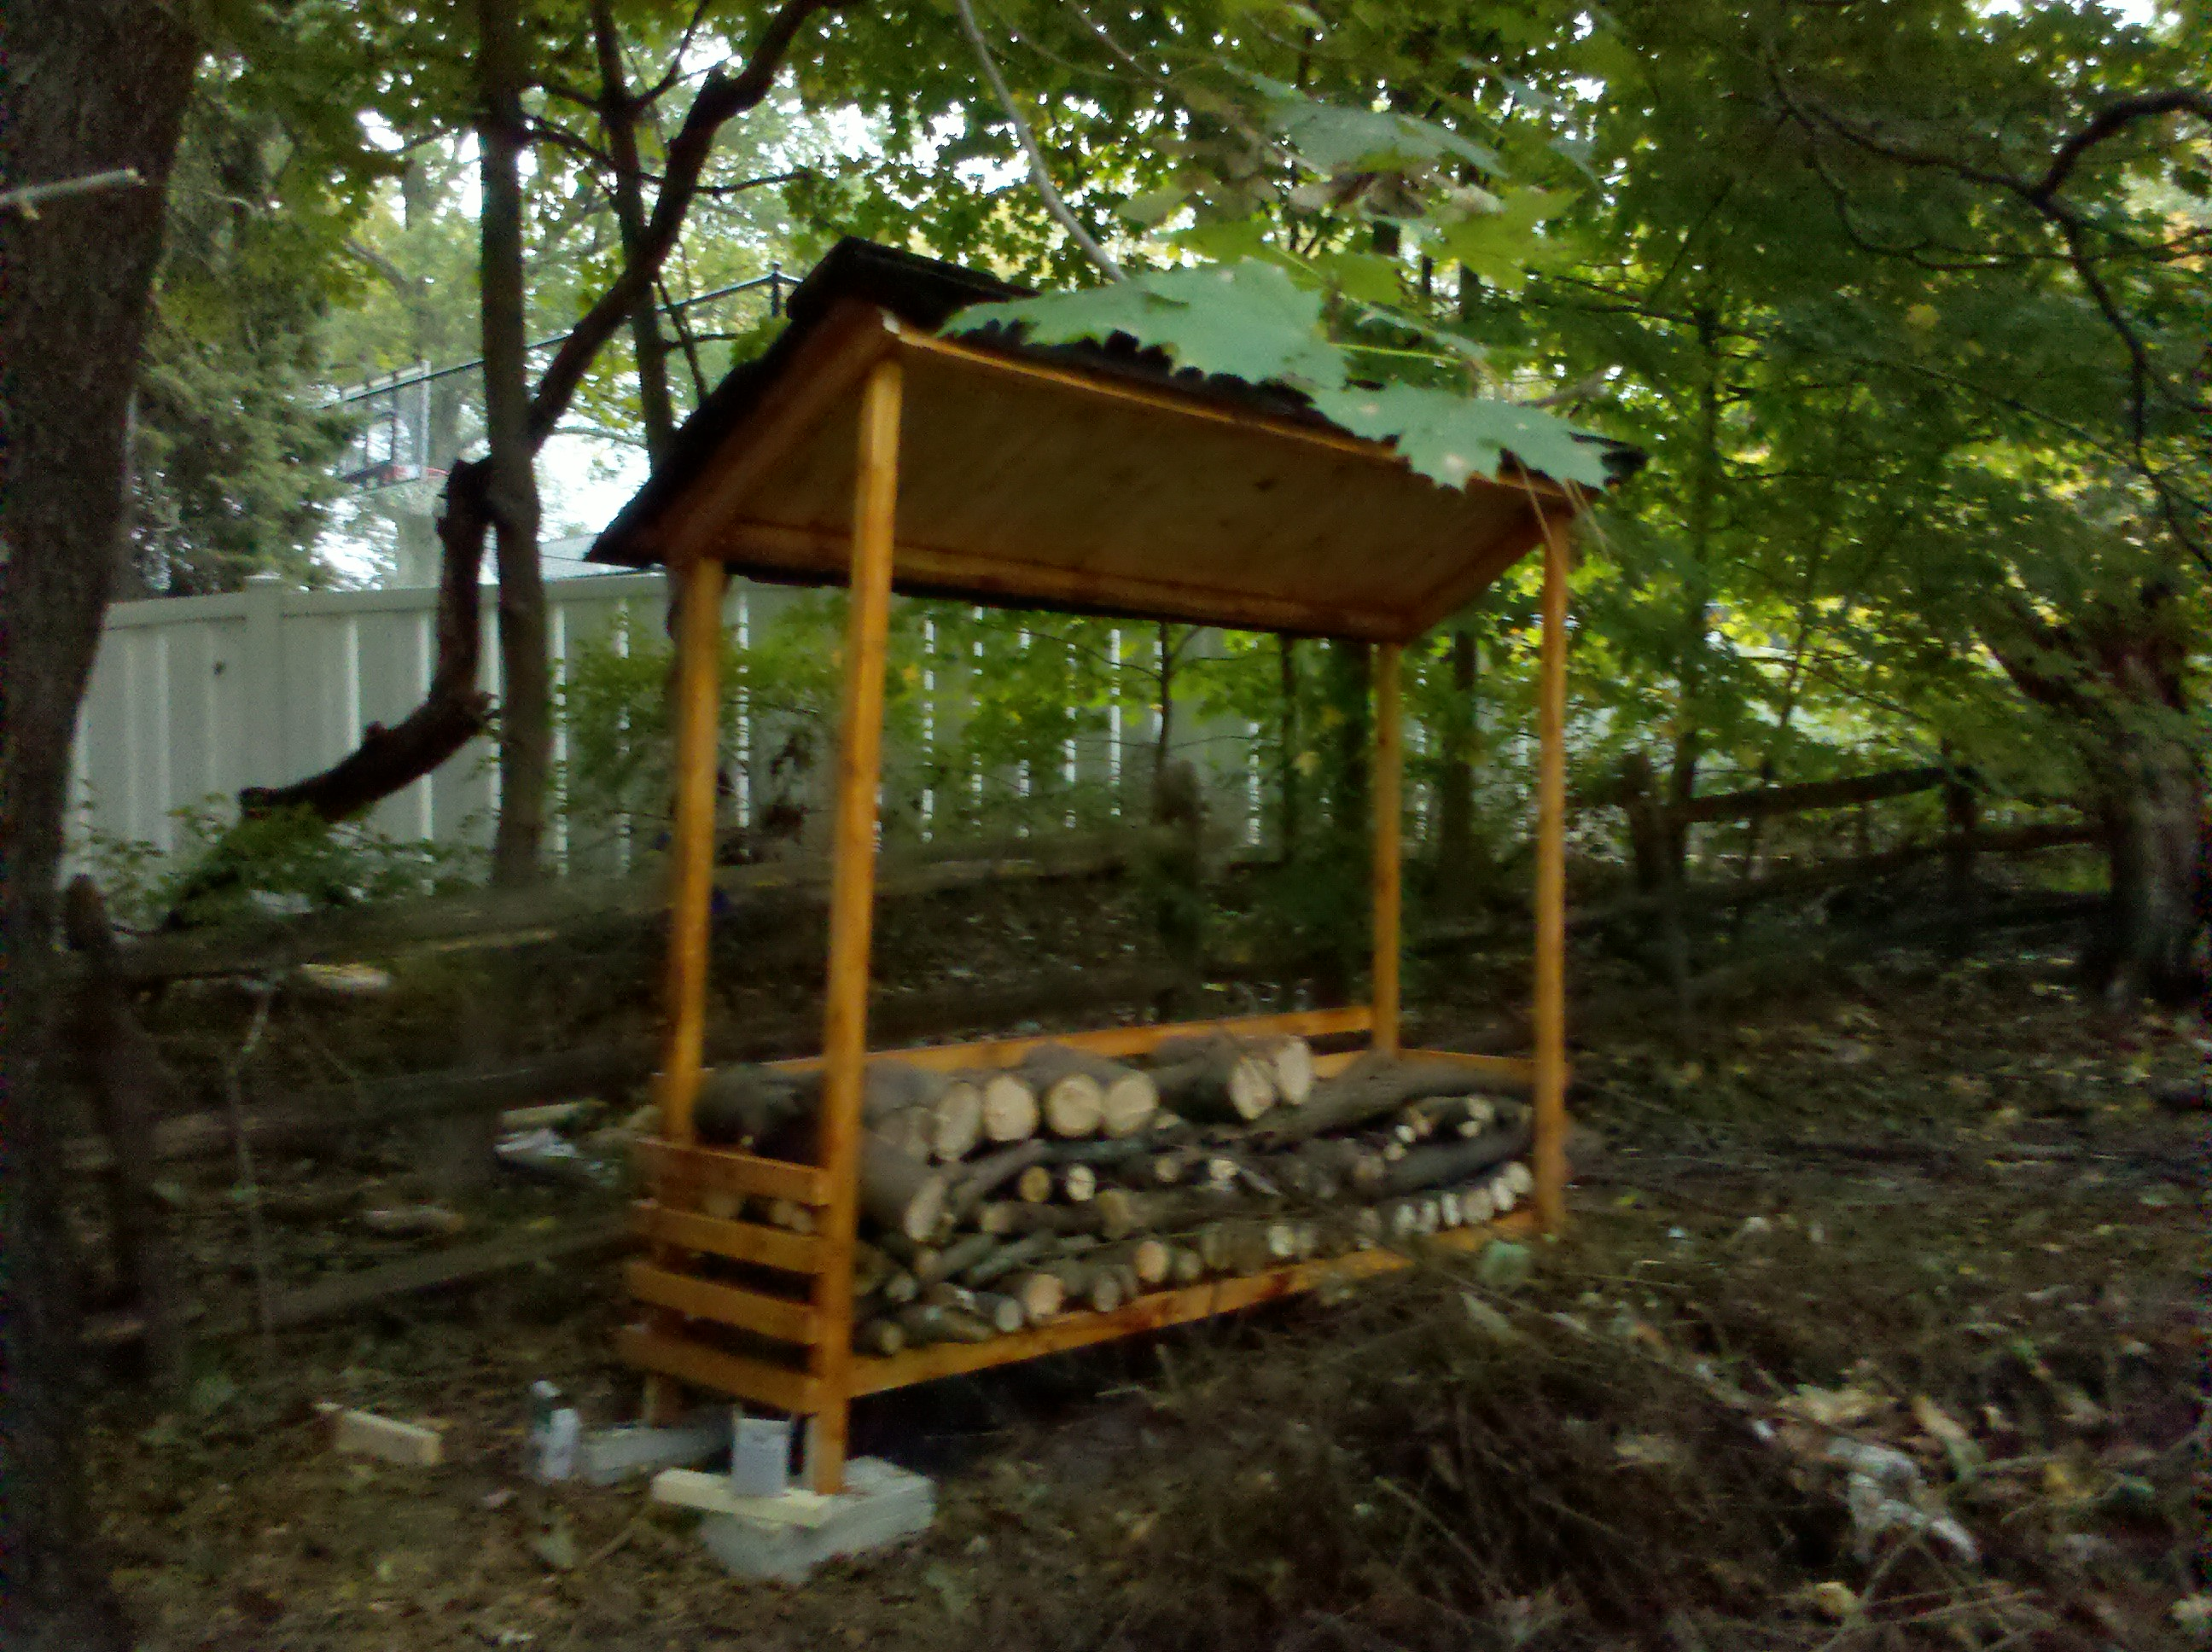 Outdoor Firewood Storage Containers 10 Wood Shed Plans To Keep Firewood Dry The Self